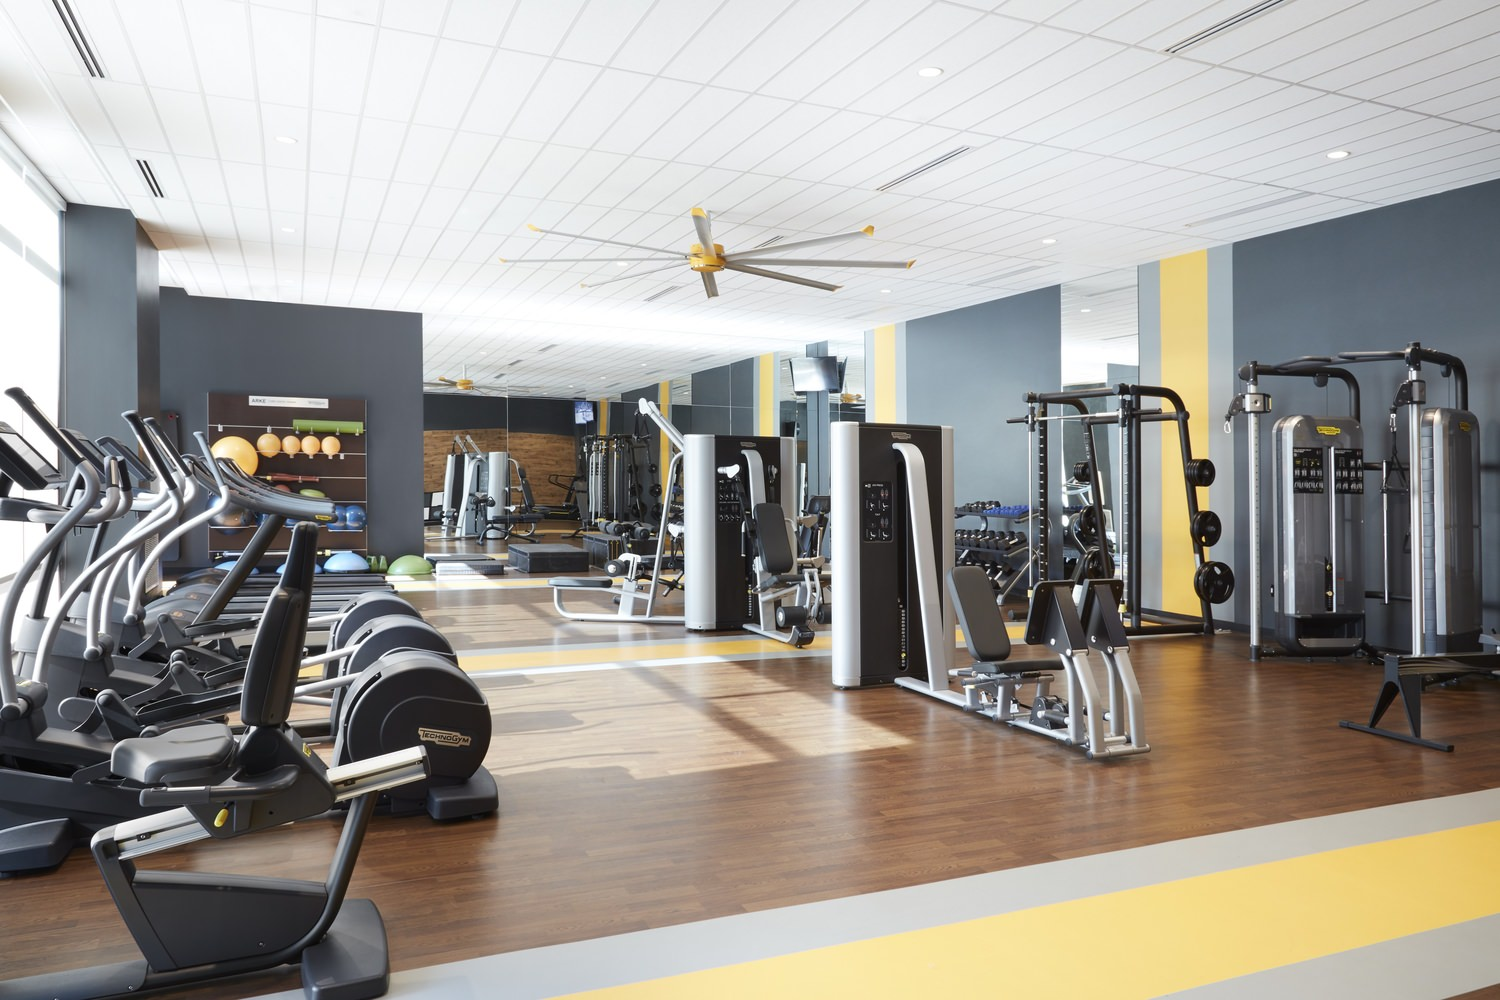 The inside view of a gym that has elliptical machines as well as some strength training machines.